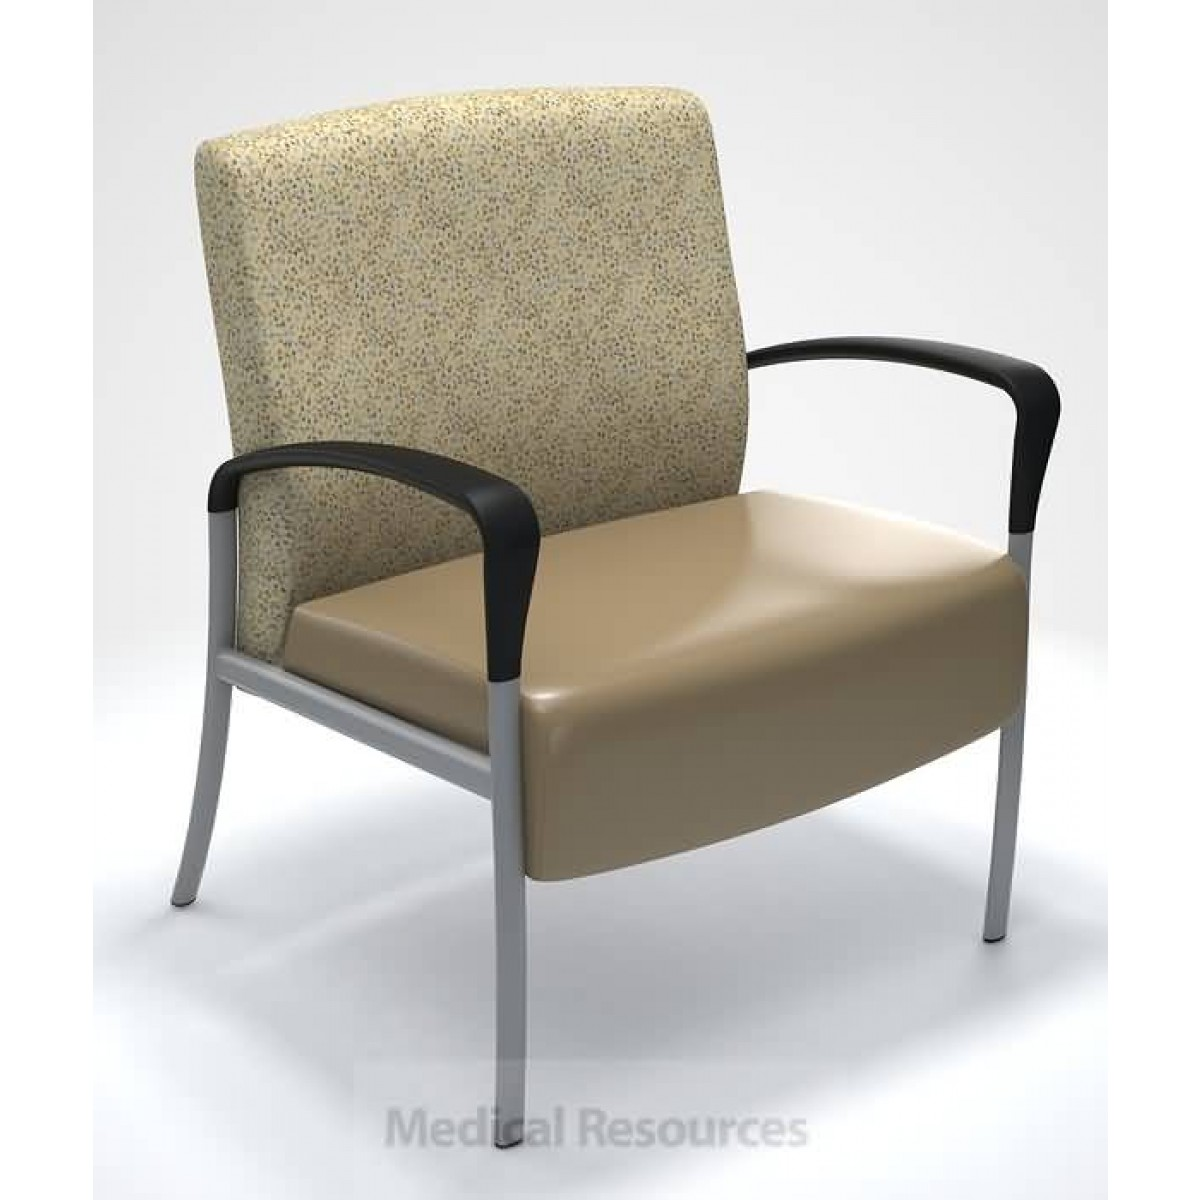 Healthcentric Bed Bug Proof Aloe Guest Chairs